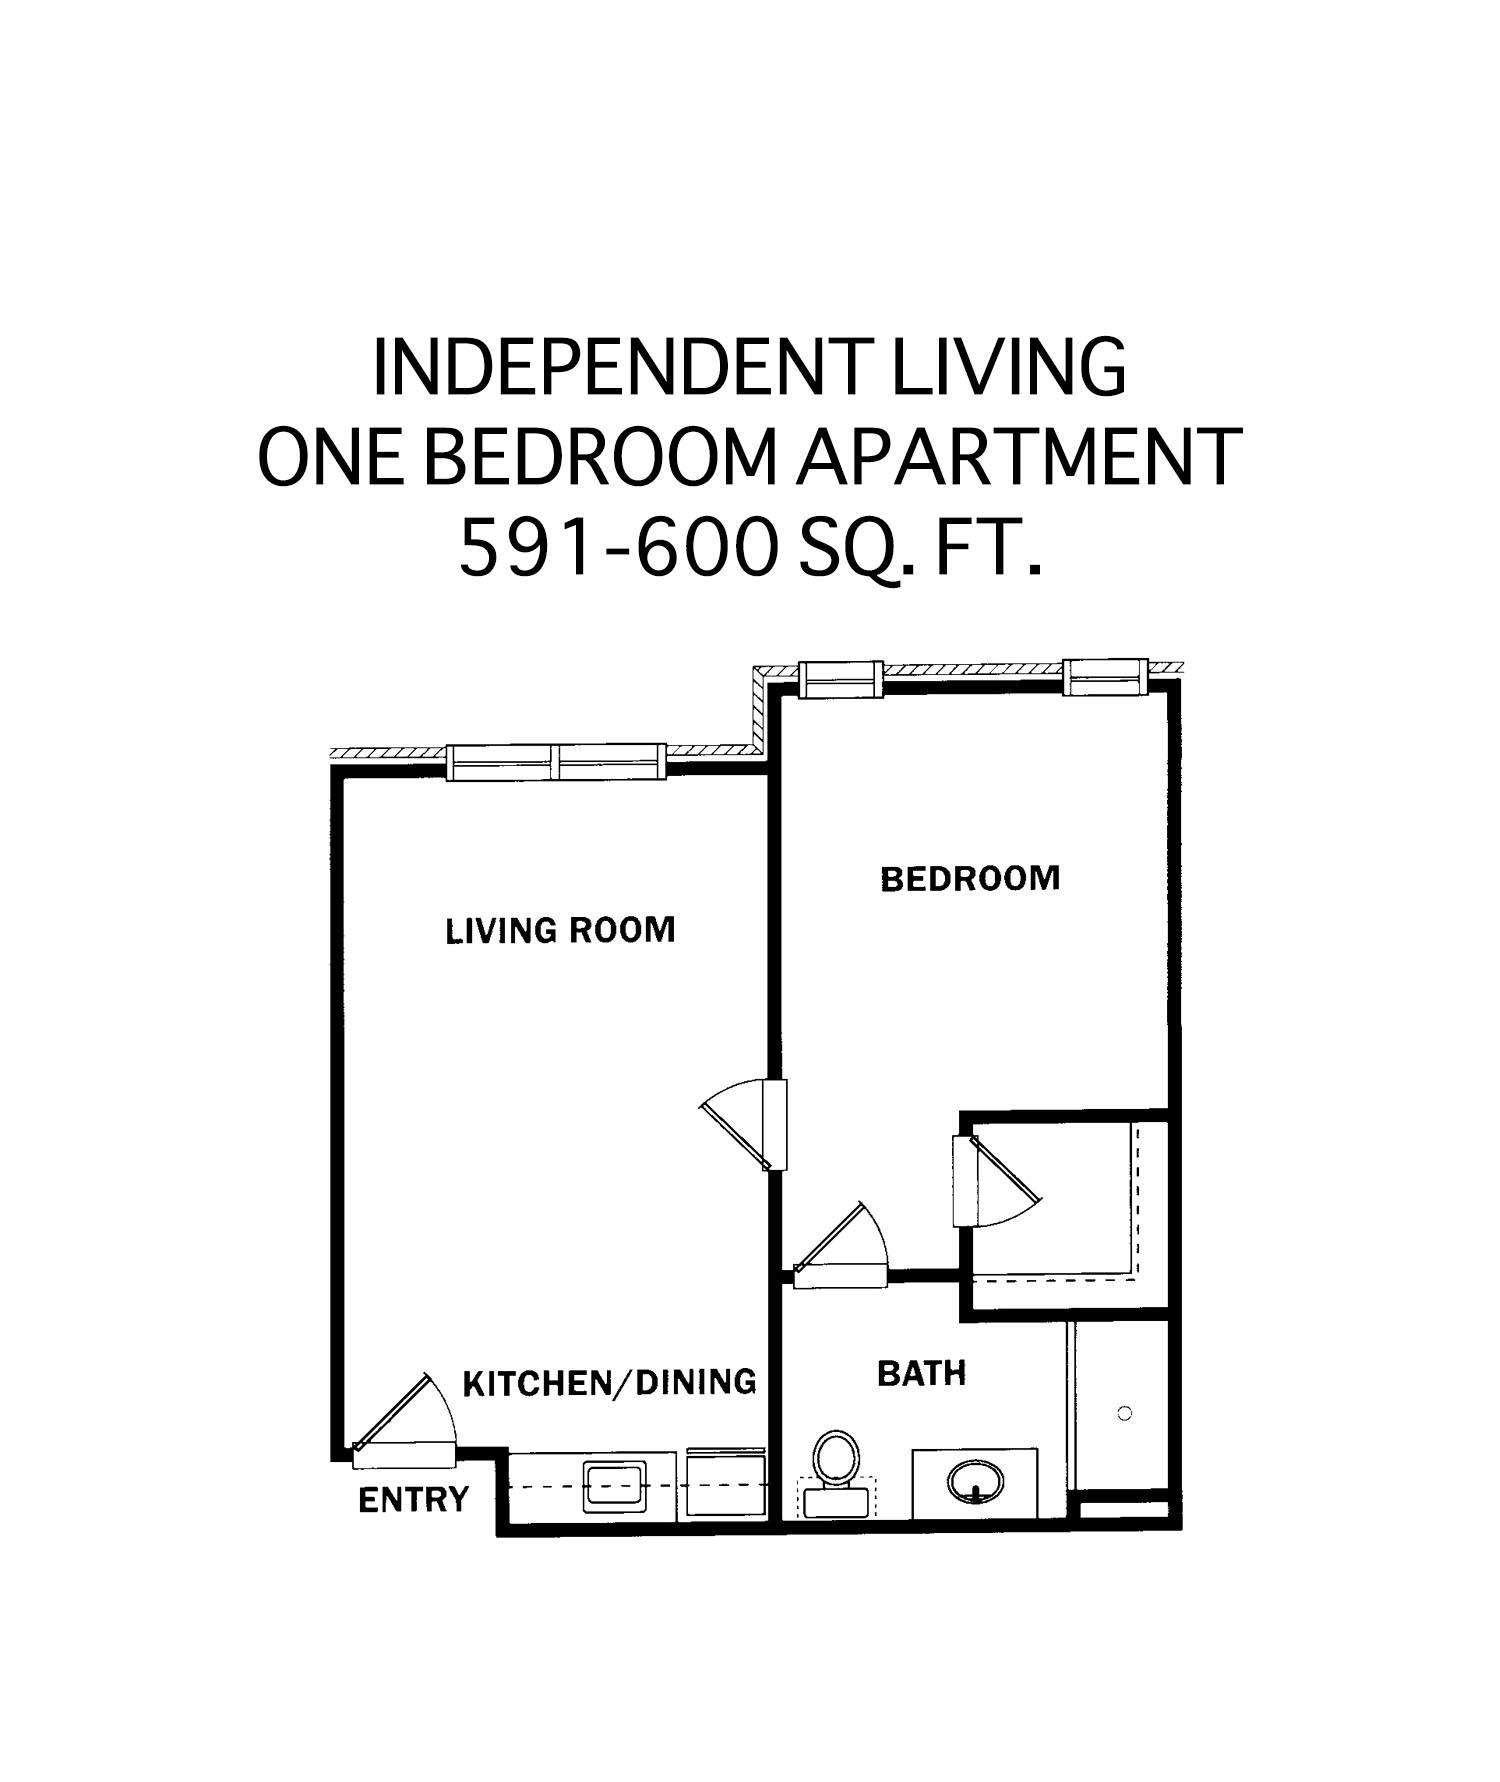 Independent Living - One Bedroom Unit Floor Plan